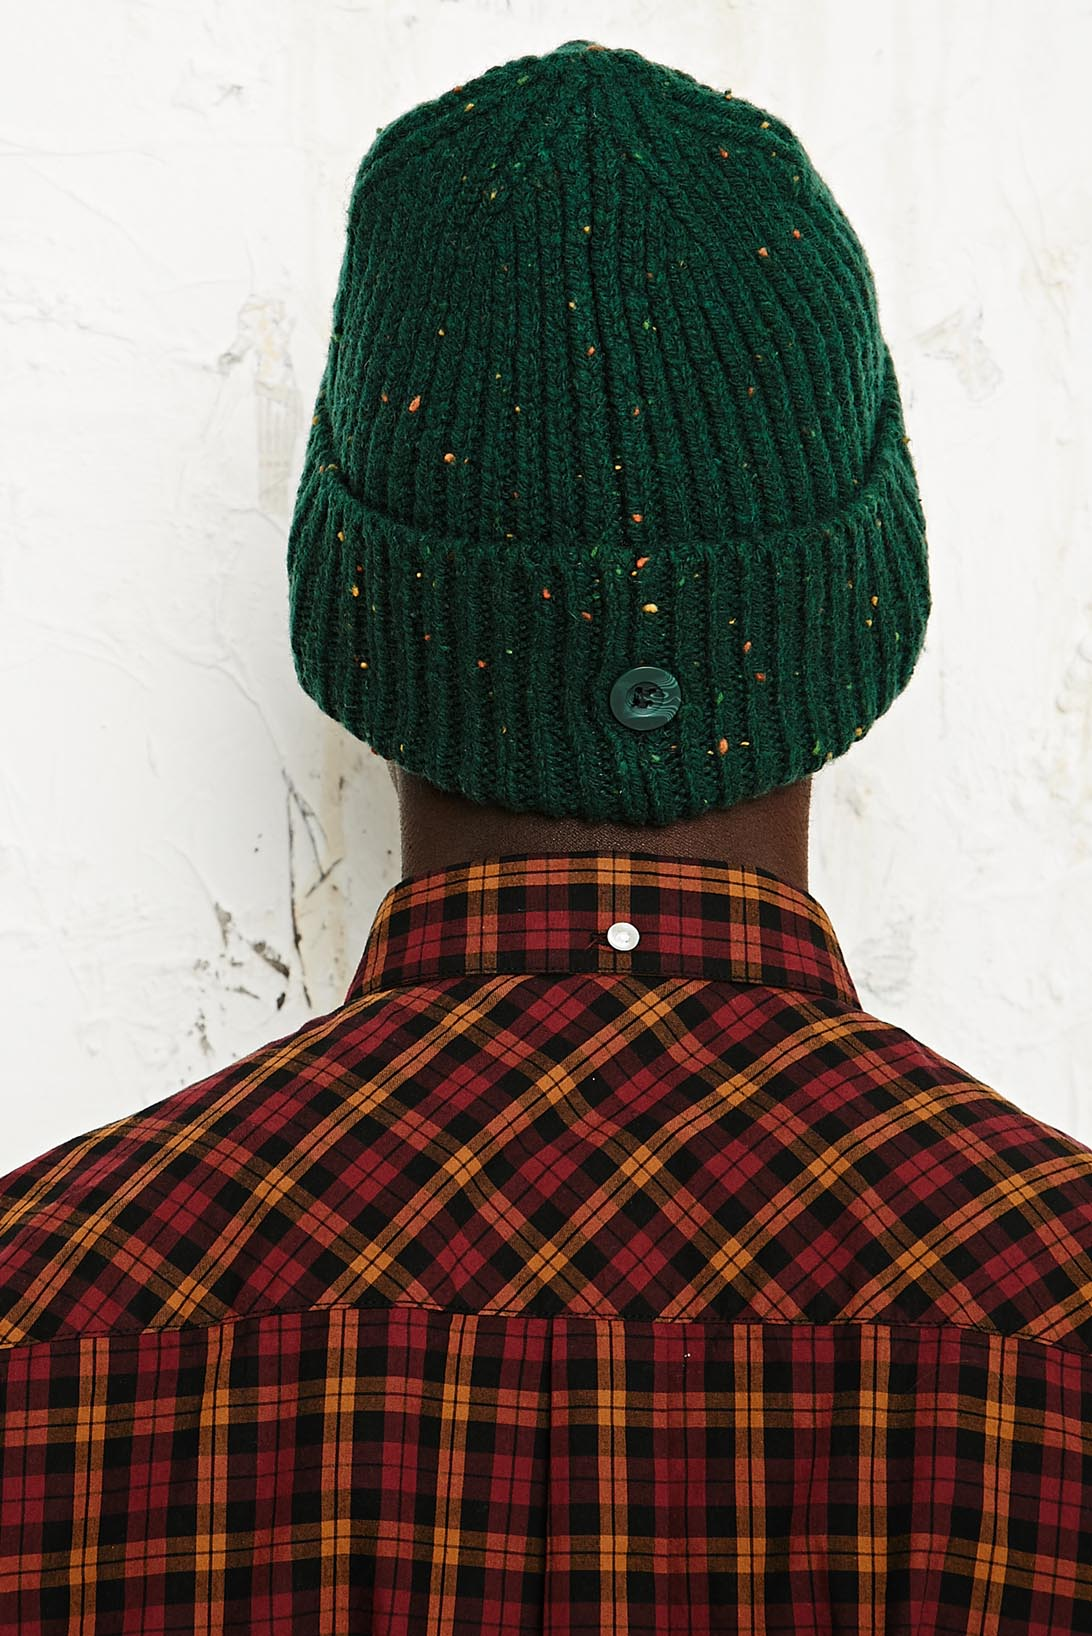 Carhartt Anglistic Beanie Hat in Green in Green for Men - Lyst daffc656f3f